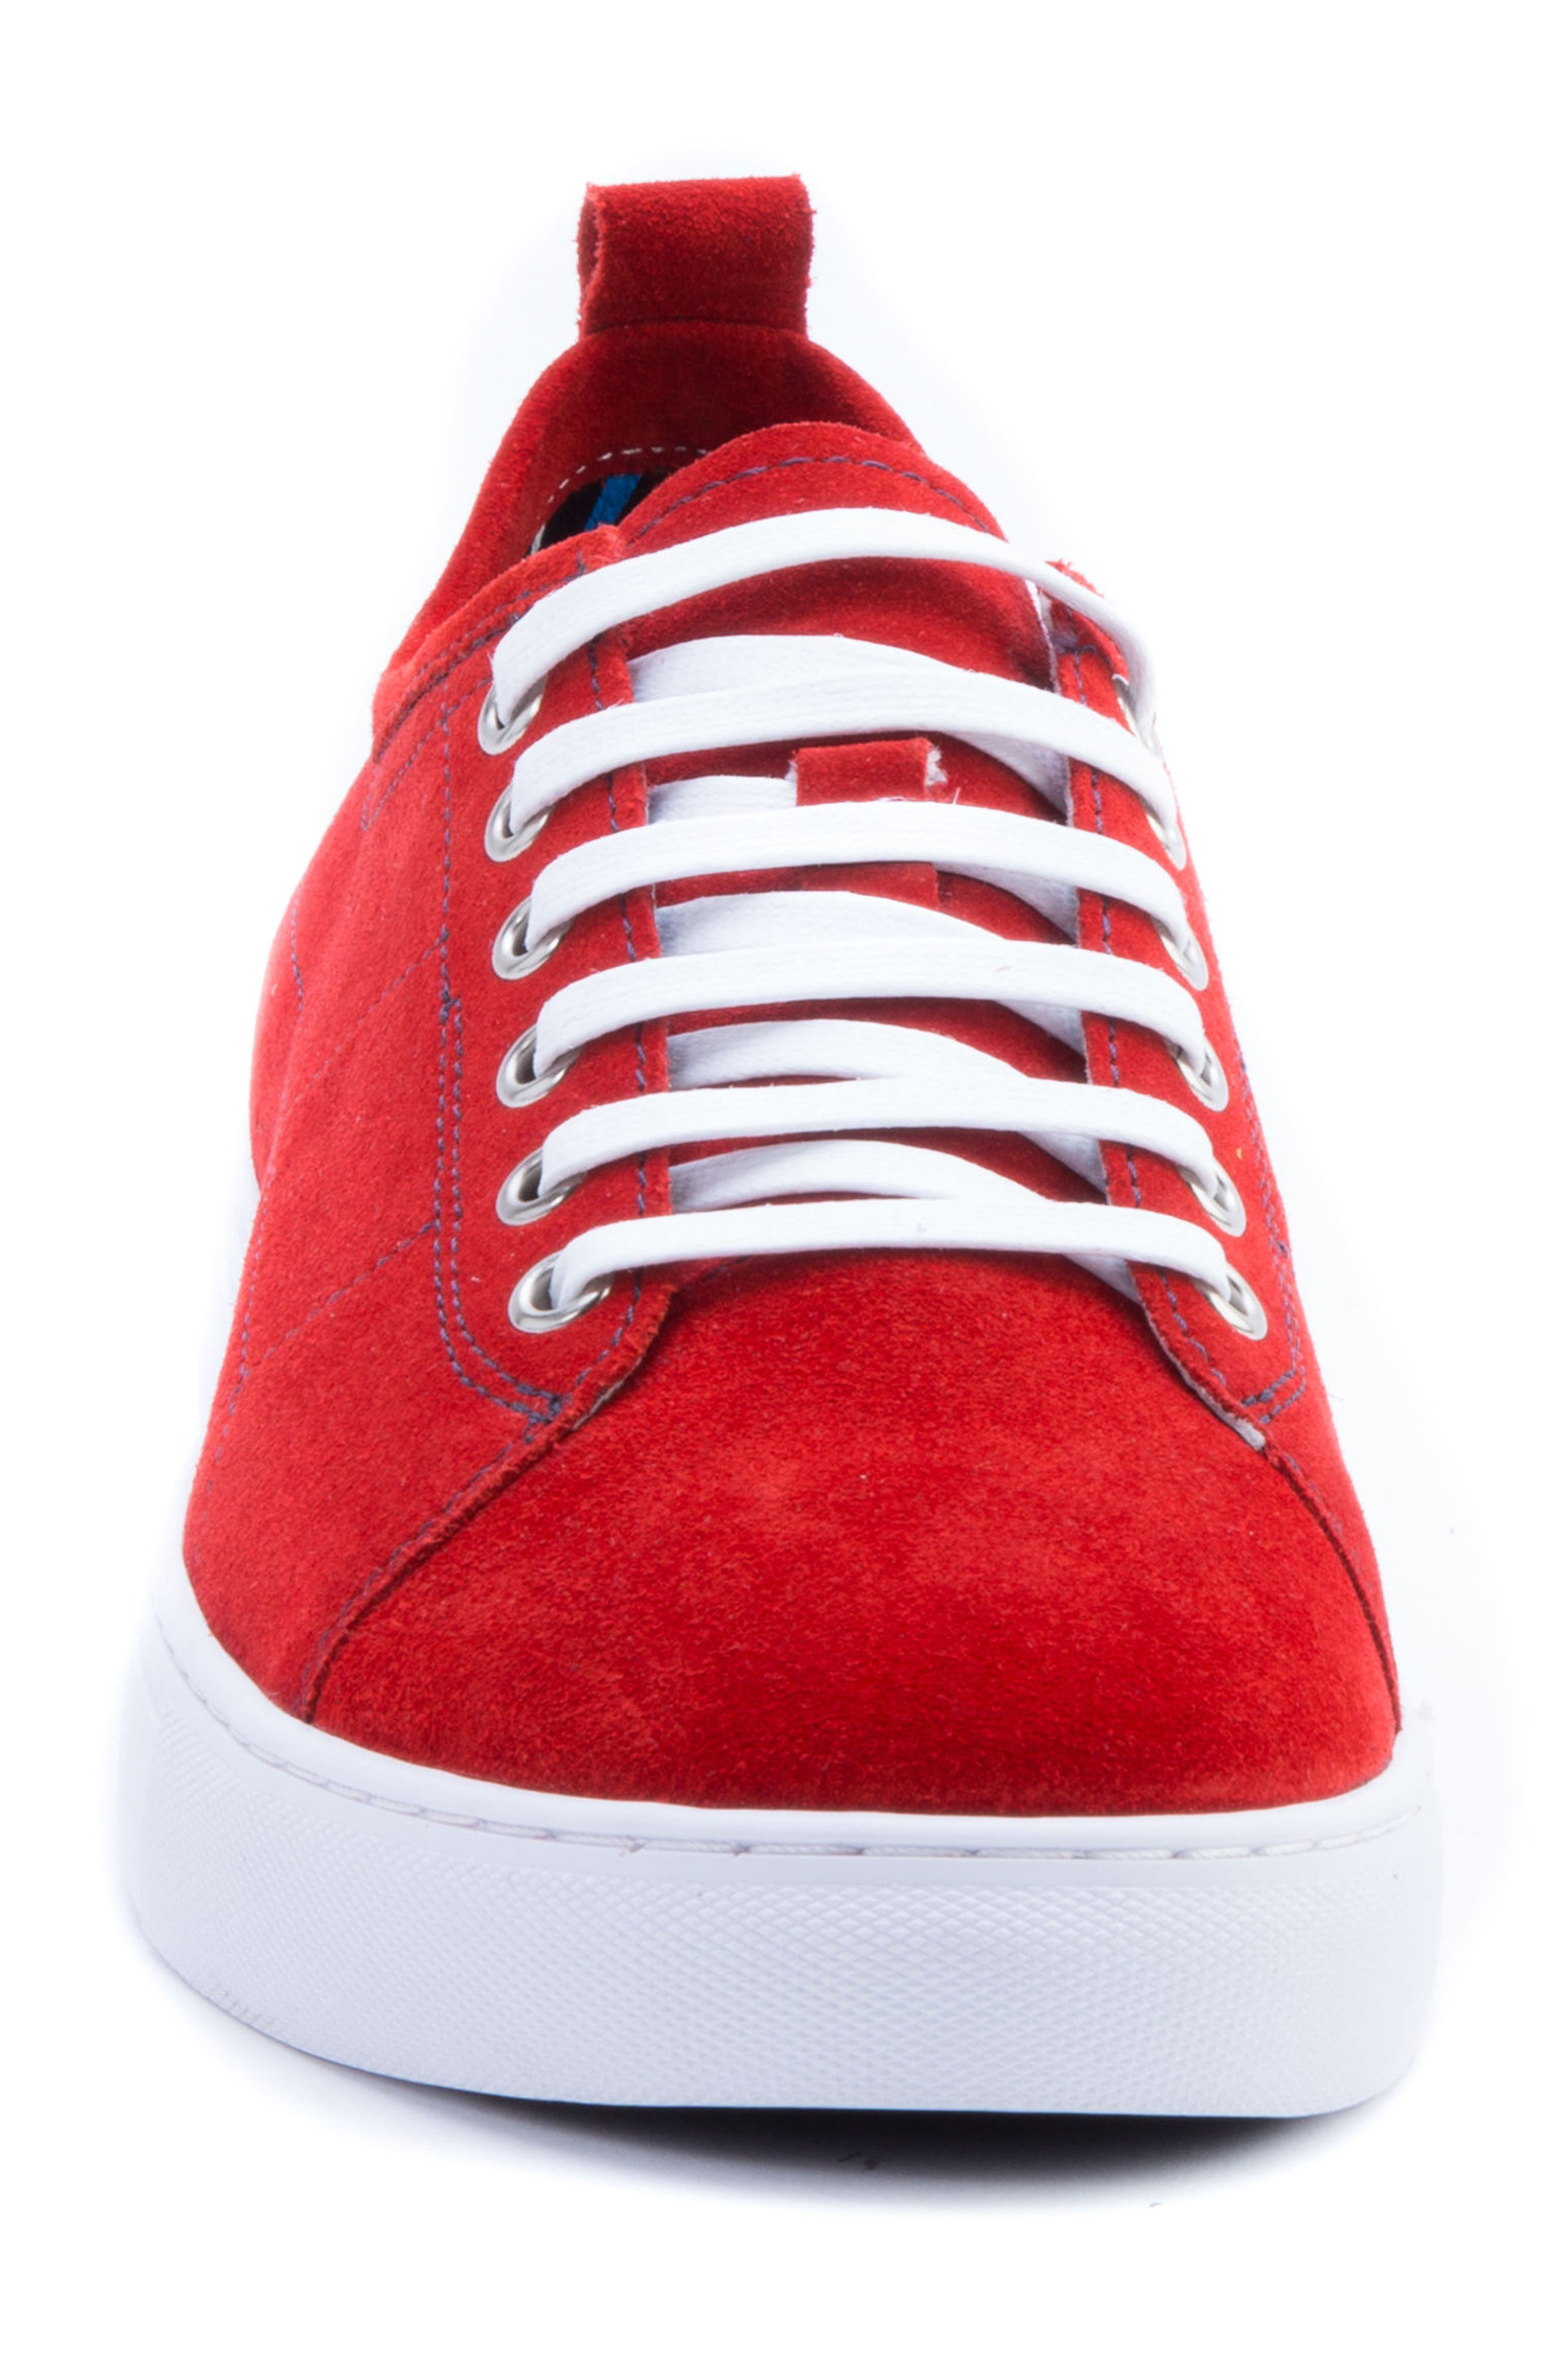 Ernesto Low Top Sneaker,                             Alternate thumbnail 4, color,                             Red Suede